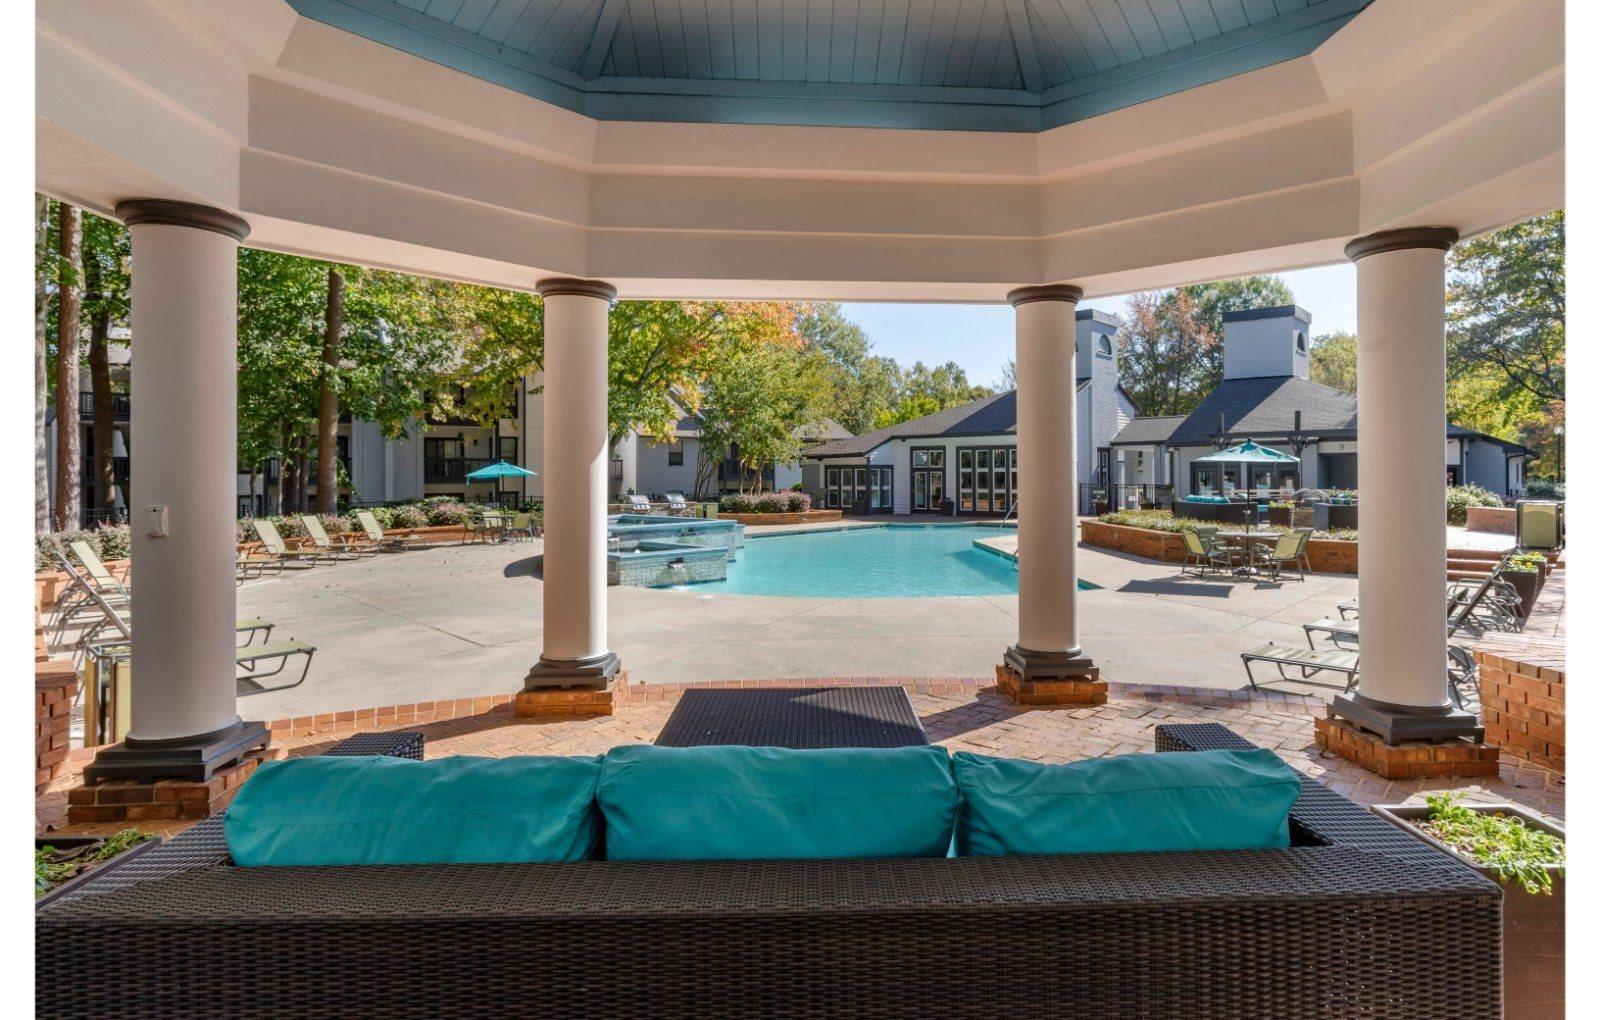 resident lounge under a gazebo with white columns,  area overlooking swimming pool, turquoise and brown couch with brown whicker ottoman, lime green chaise lounge